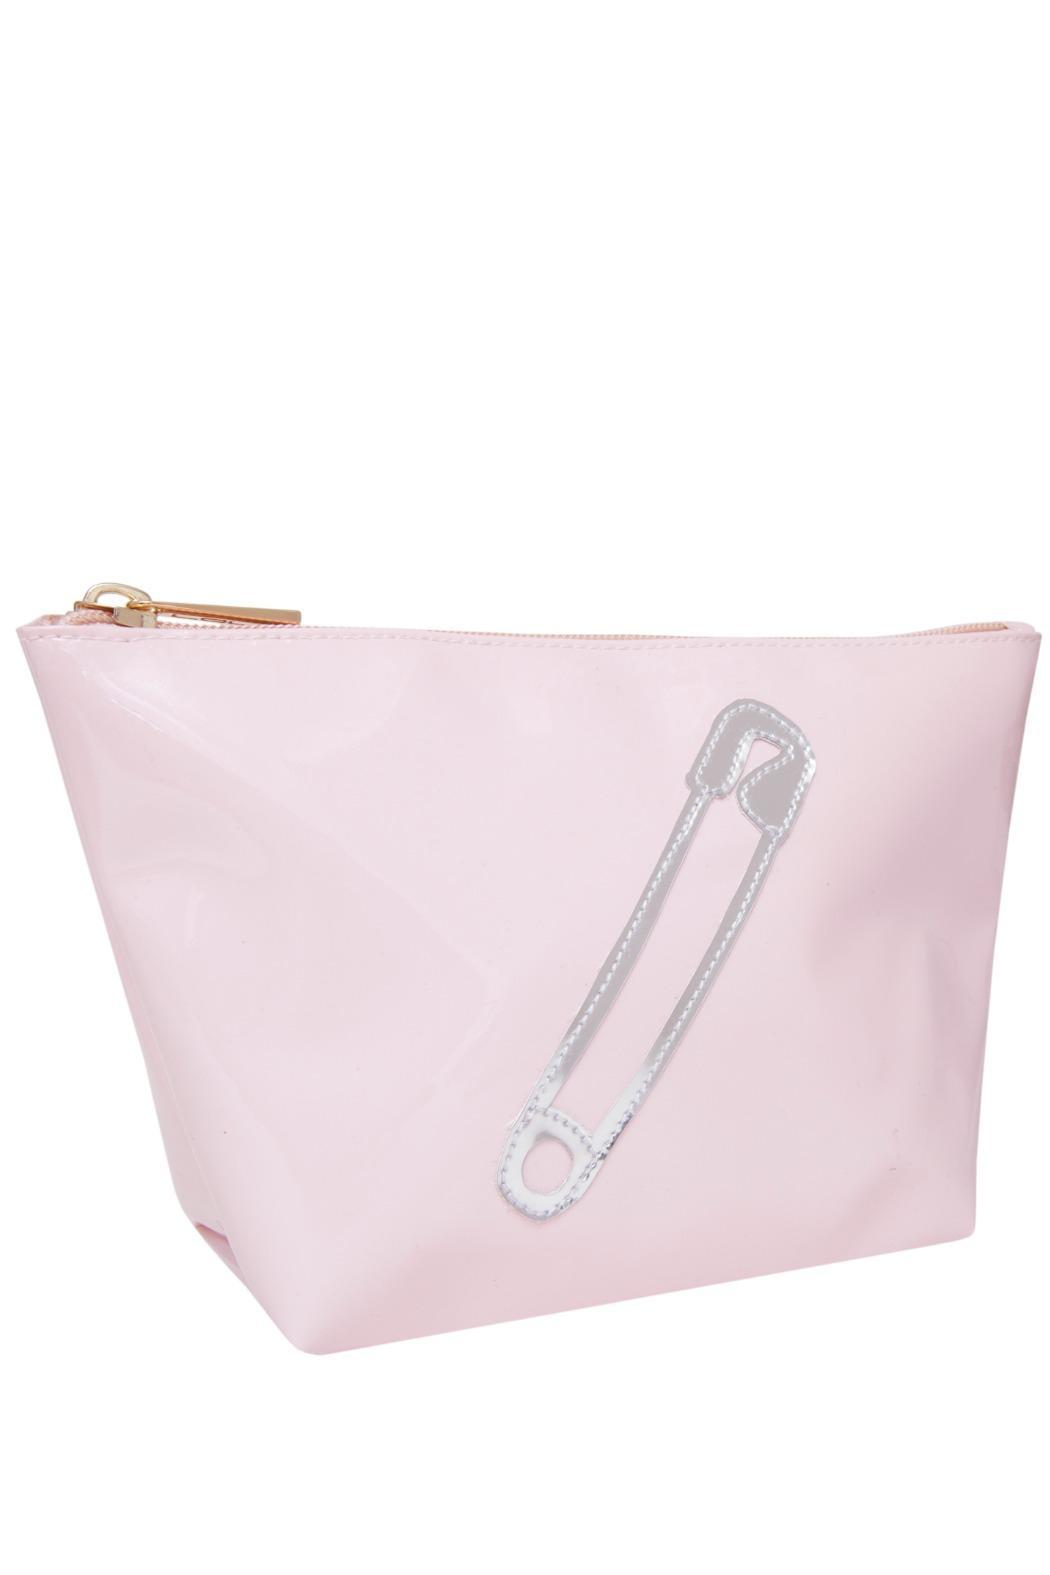 Lolo Bags Safety Pin Case - Main Image